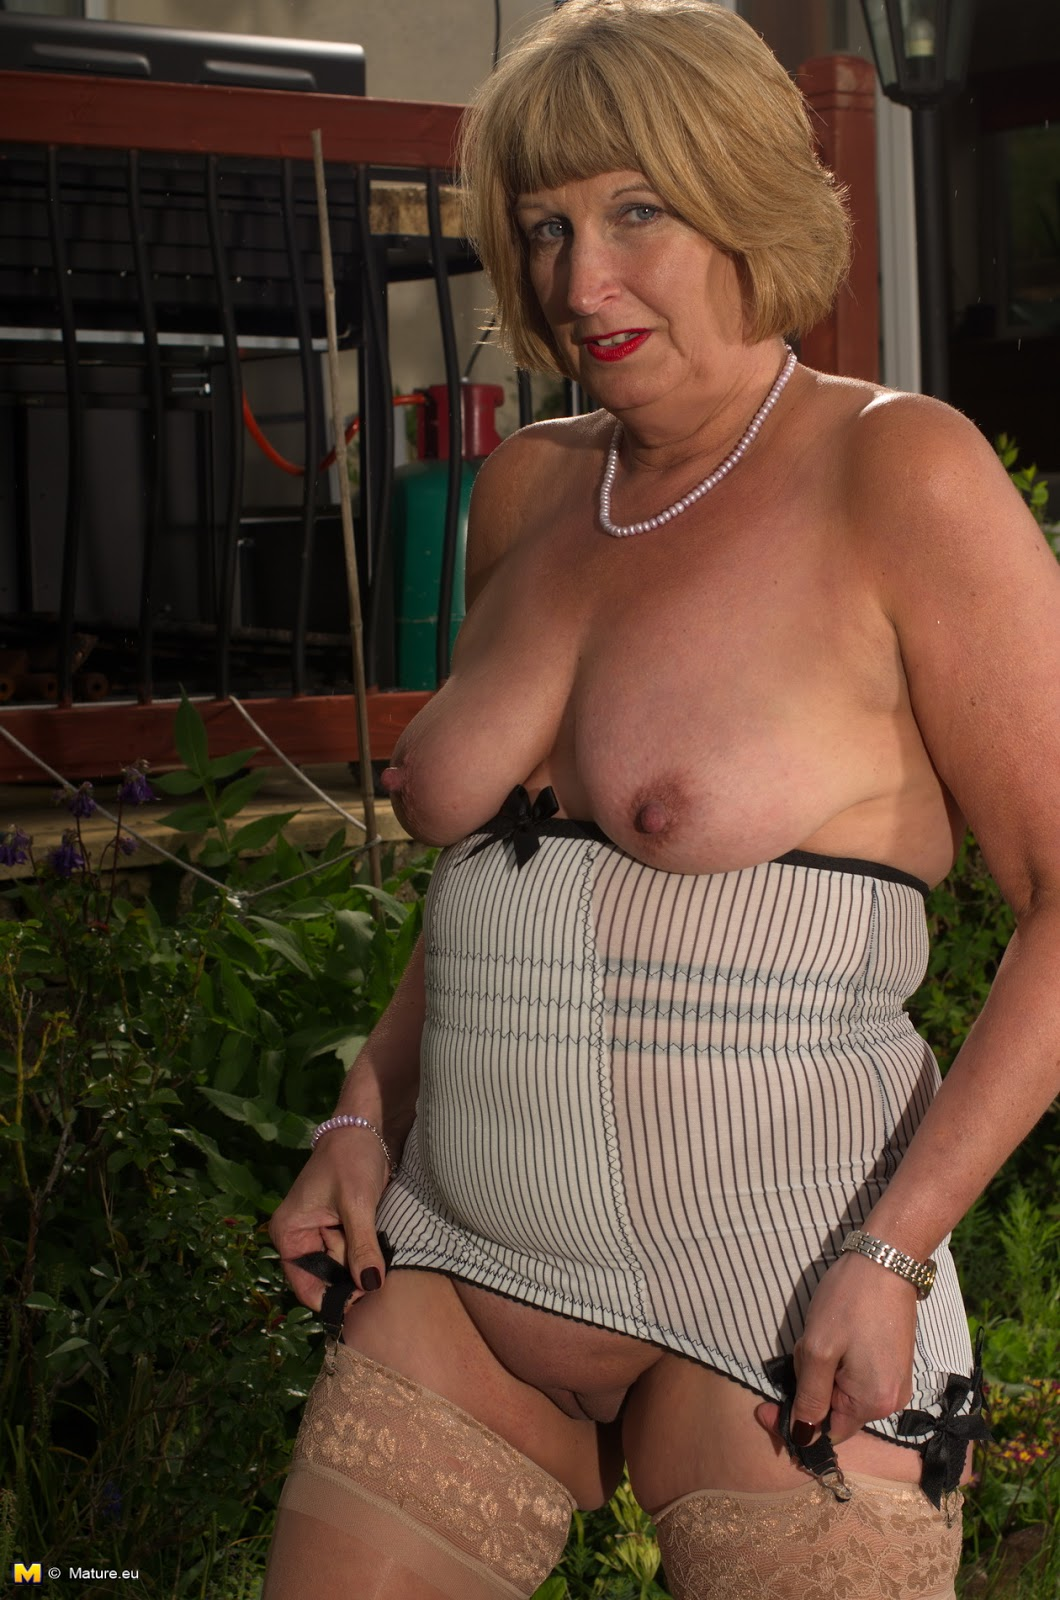 Mature Women Rosemarie 88